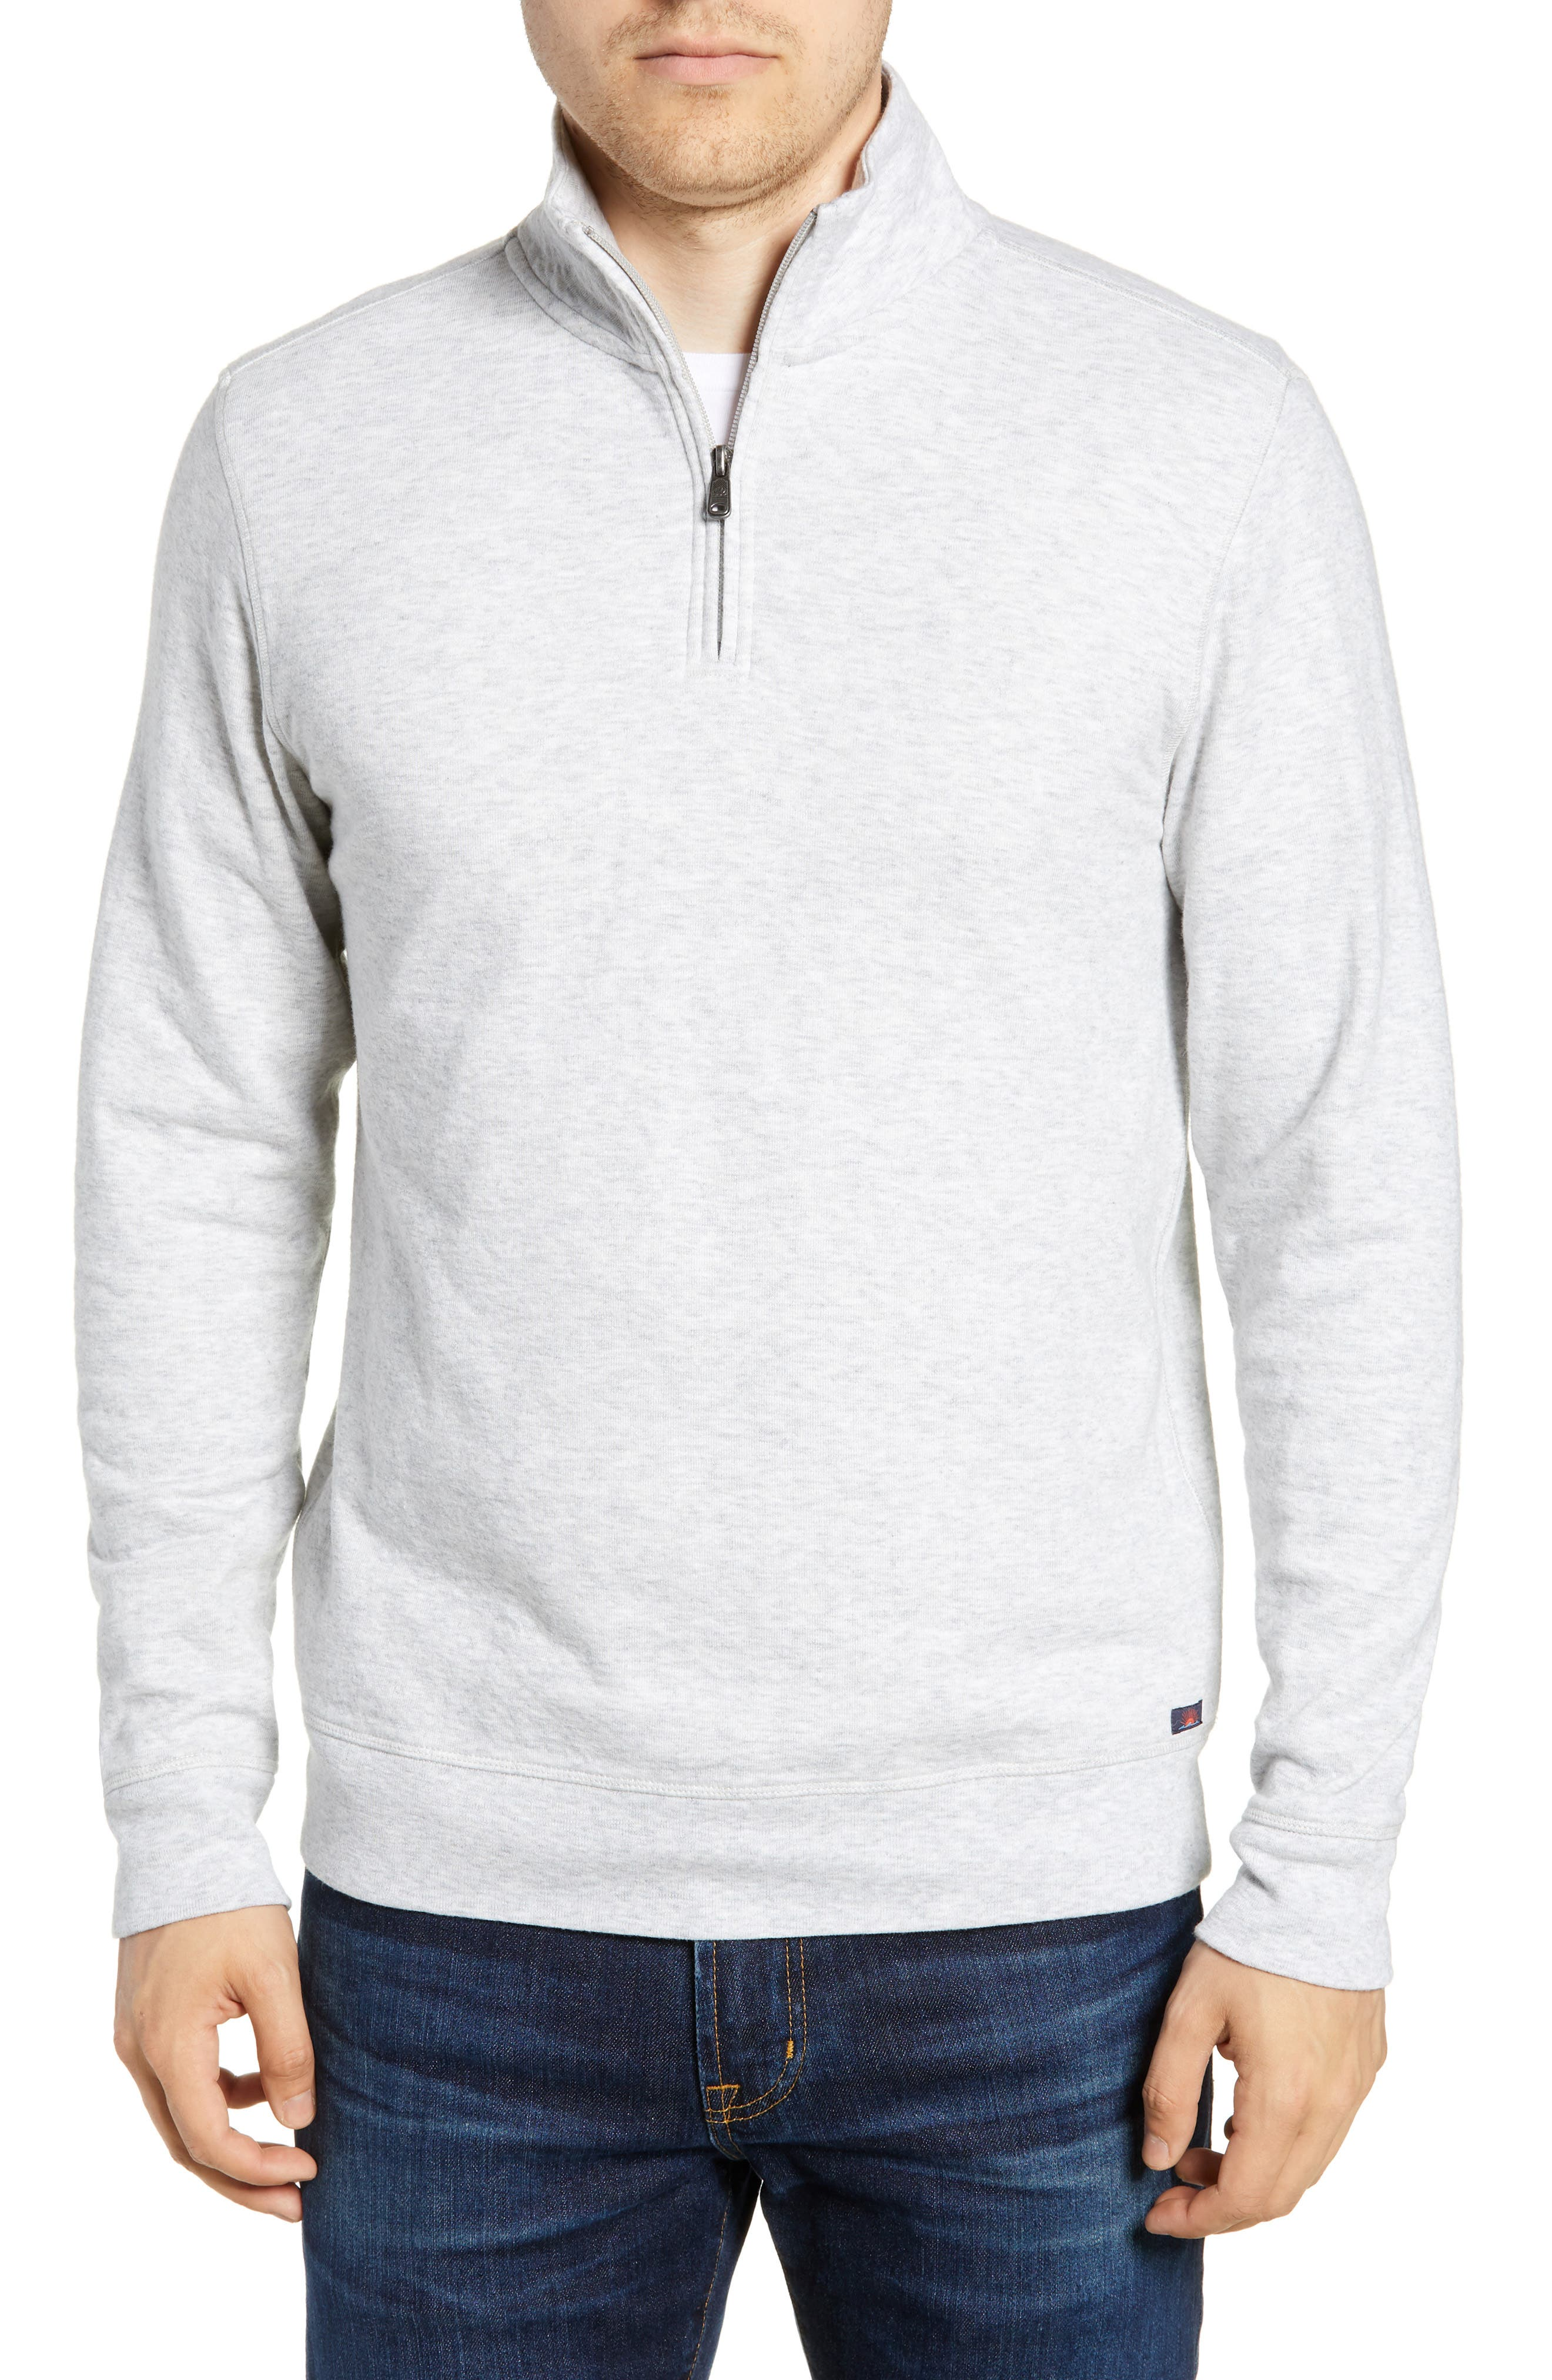 Faherty Brand Dual Knit Regular Fit Quarter Zip Pullover